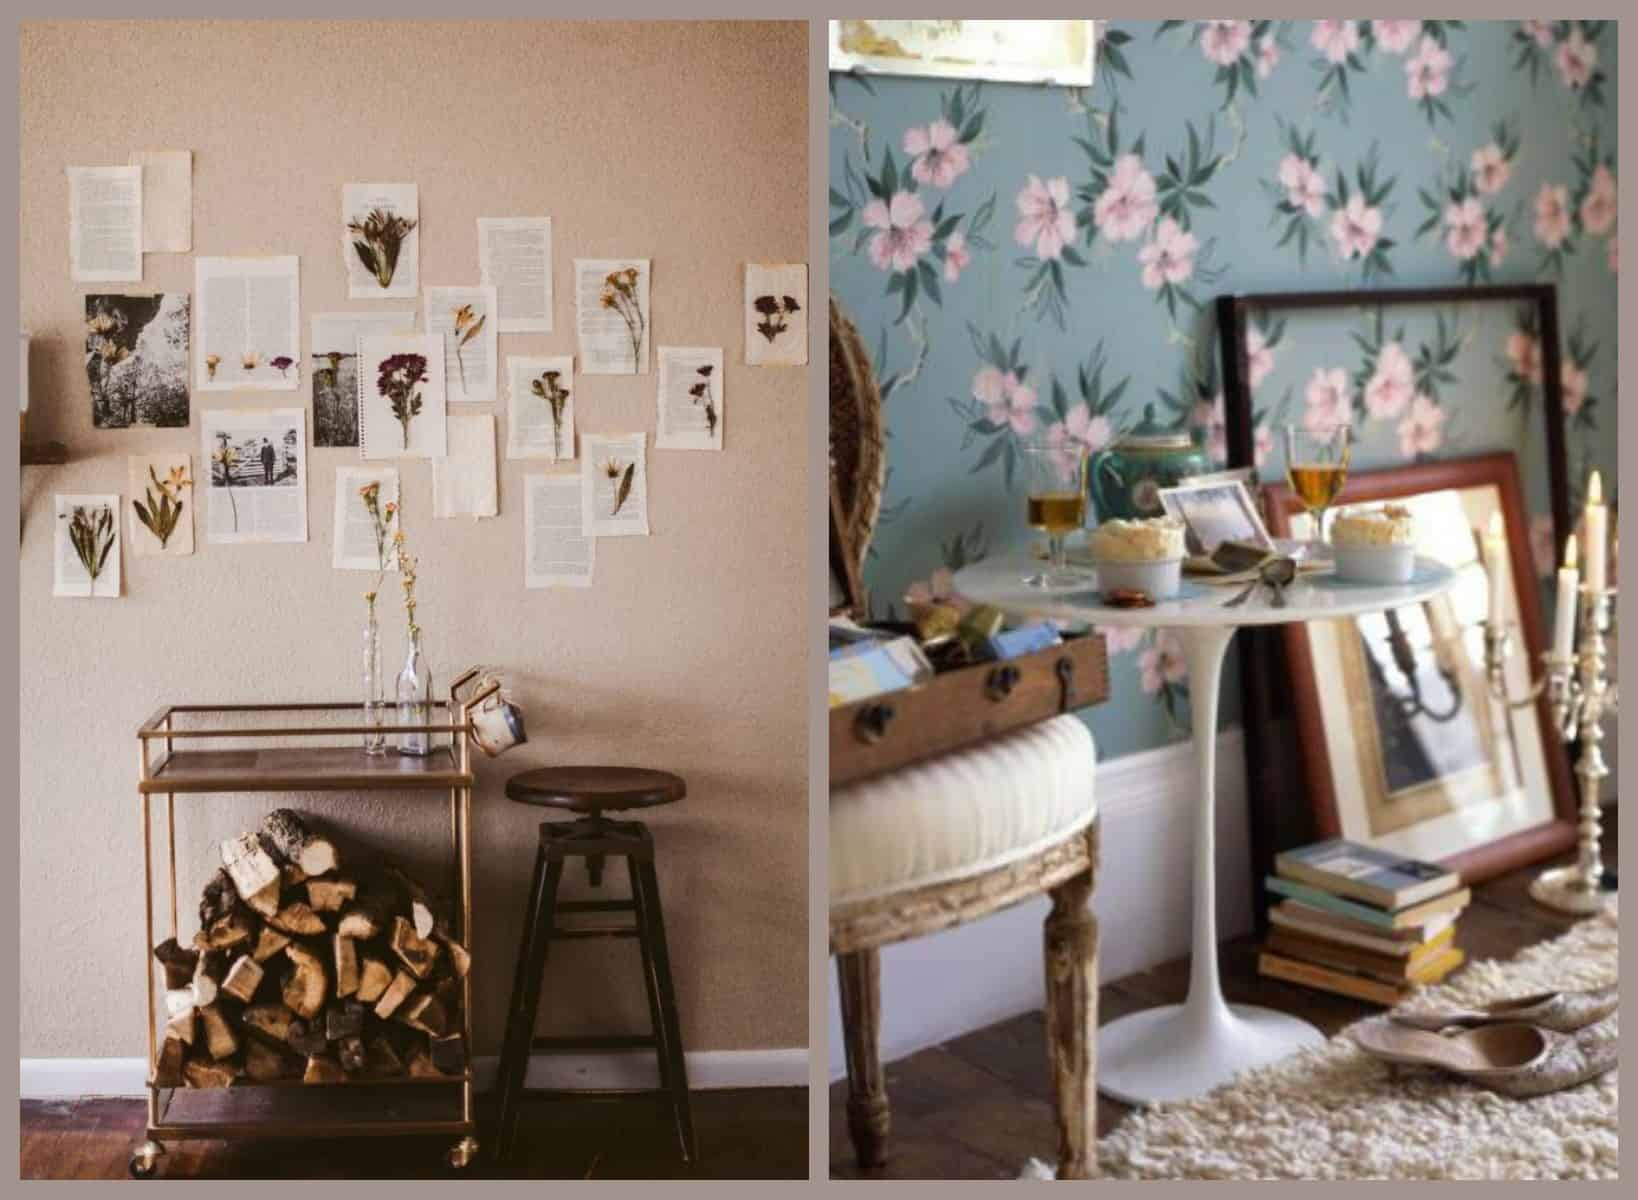 Diy 10 idee su come decorare una parete di casa - Idee per decorare una stanza ...